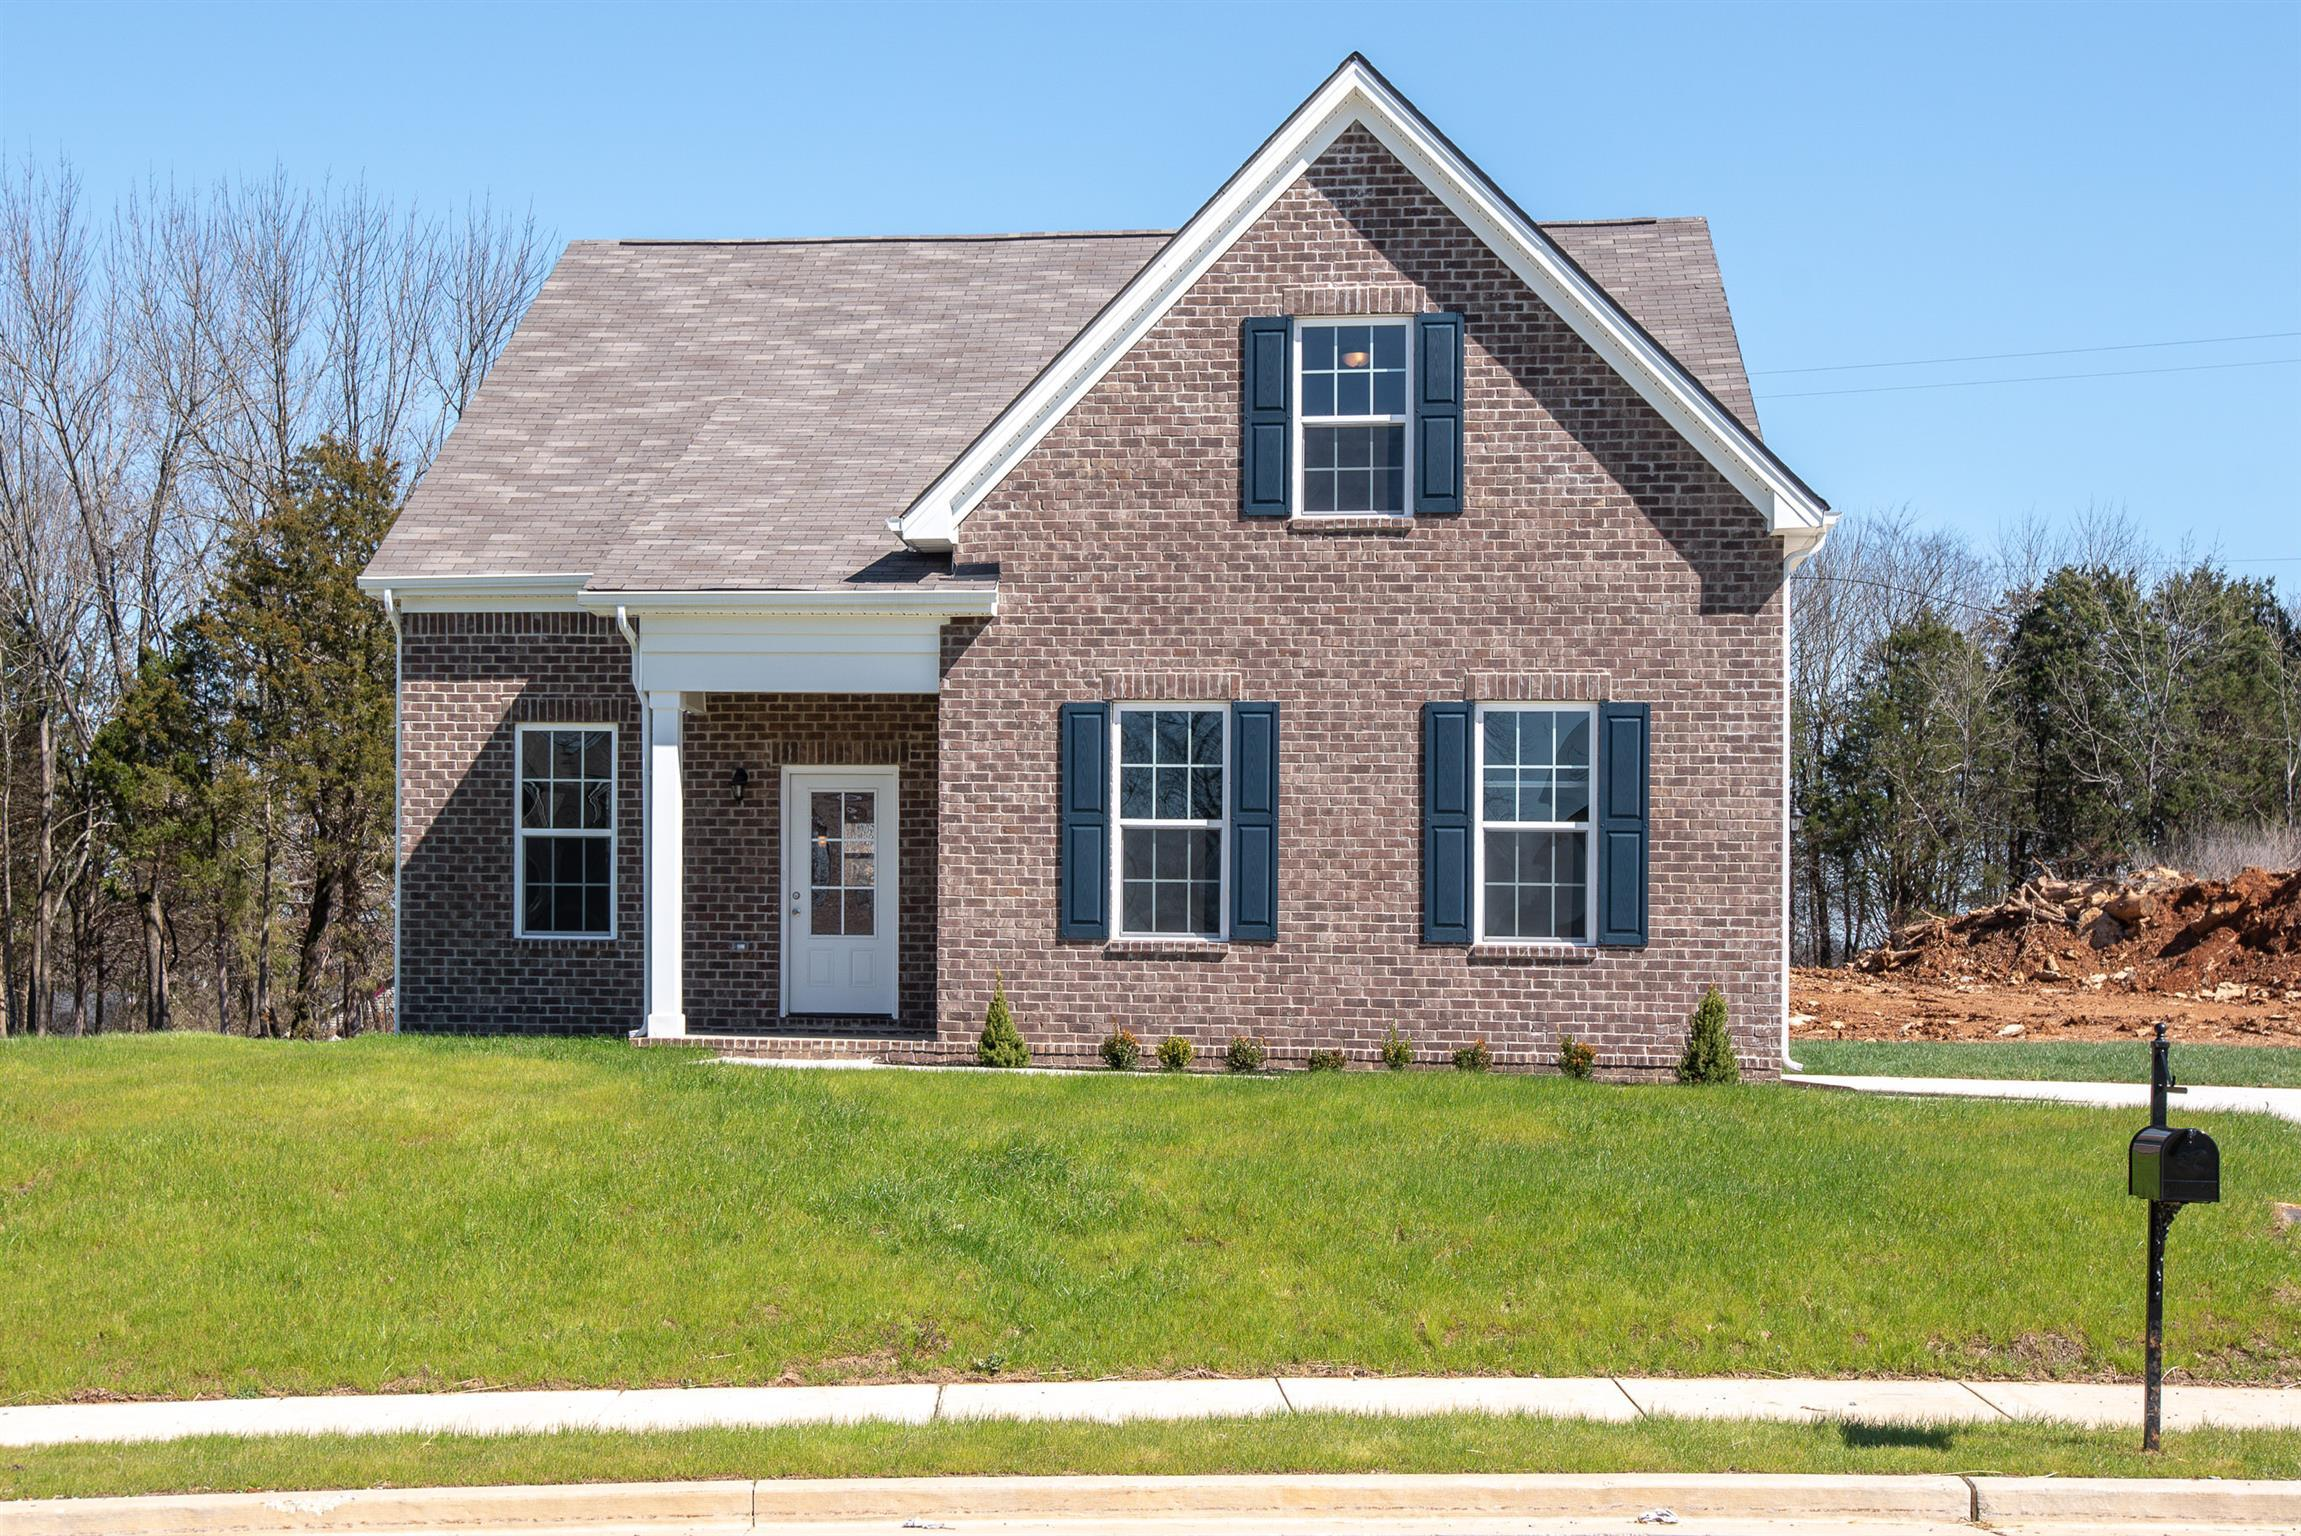 1036 Trevino Pl, Nashville-Antioch in Davidson County County, TN 37013 Home for Sale